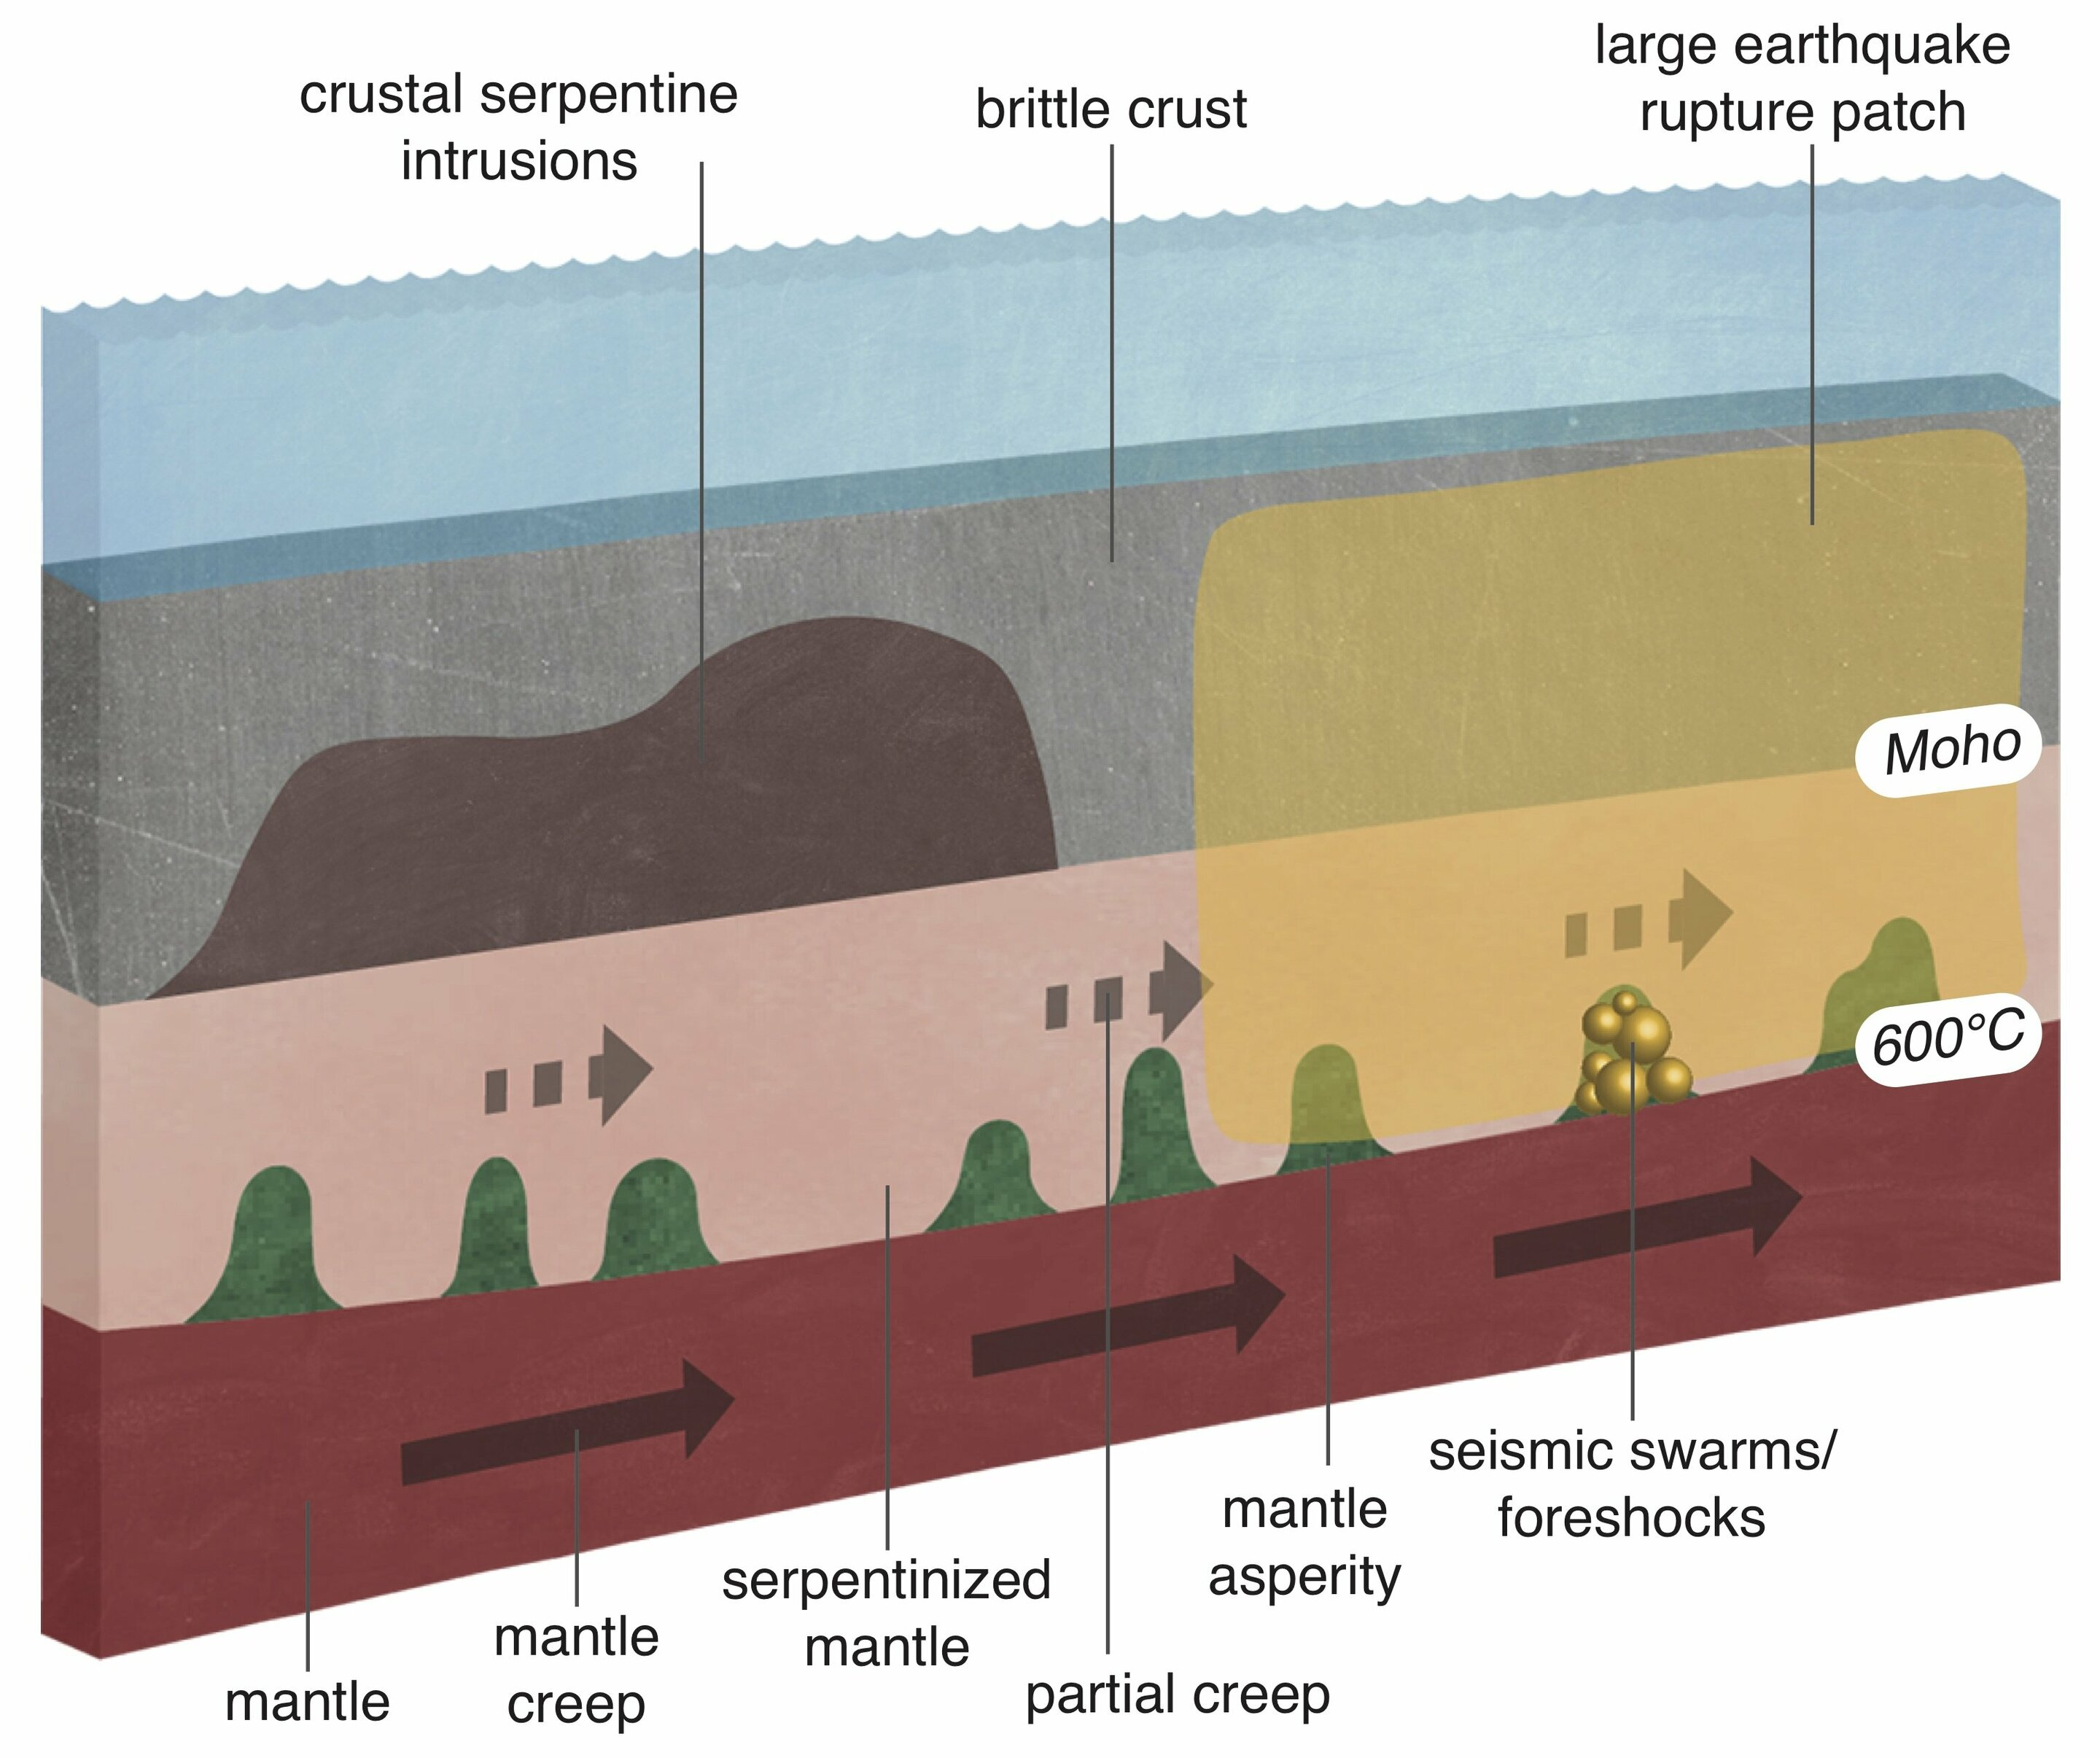 'Silent slip' along fault line serves as prelude to big earthquakes, research suggests